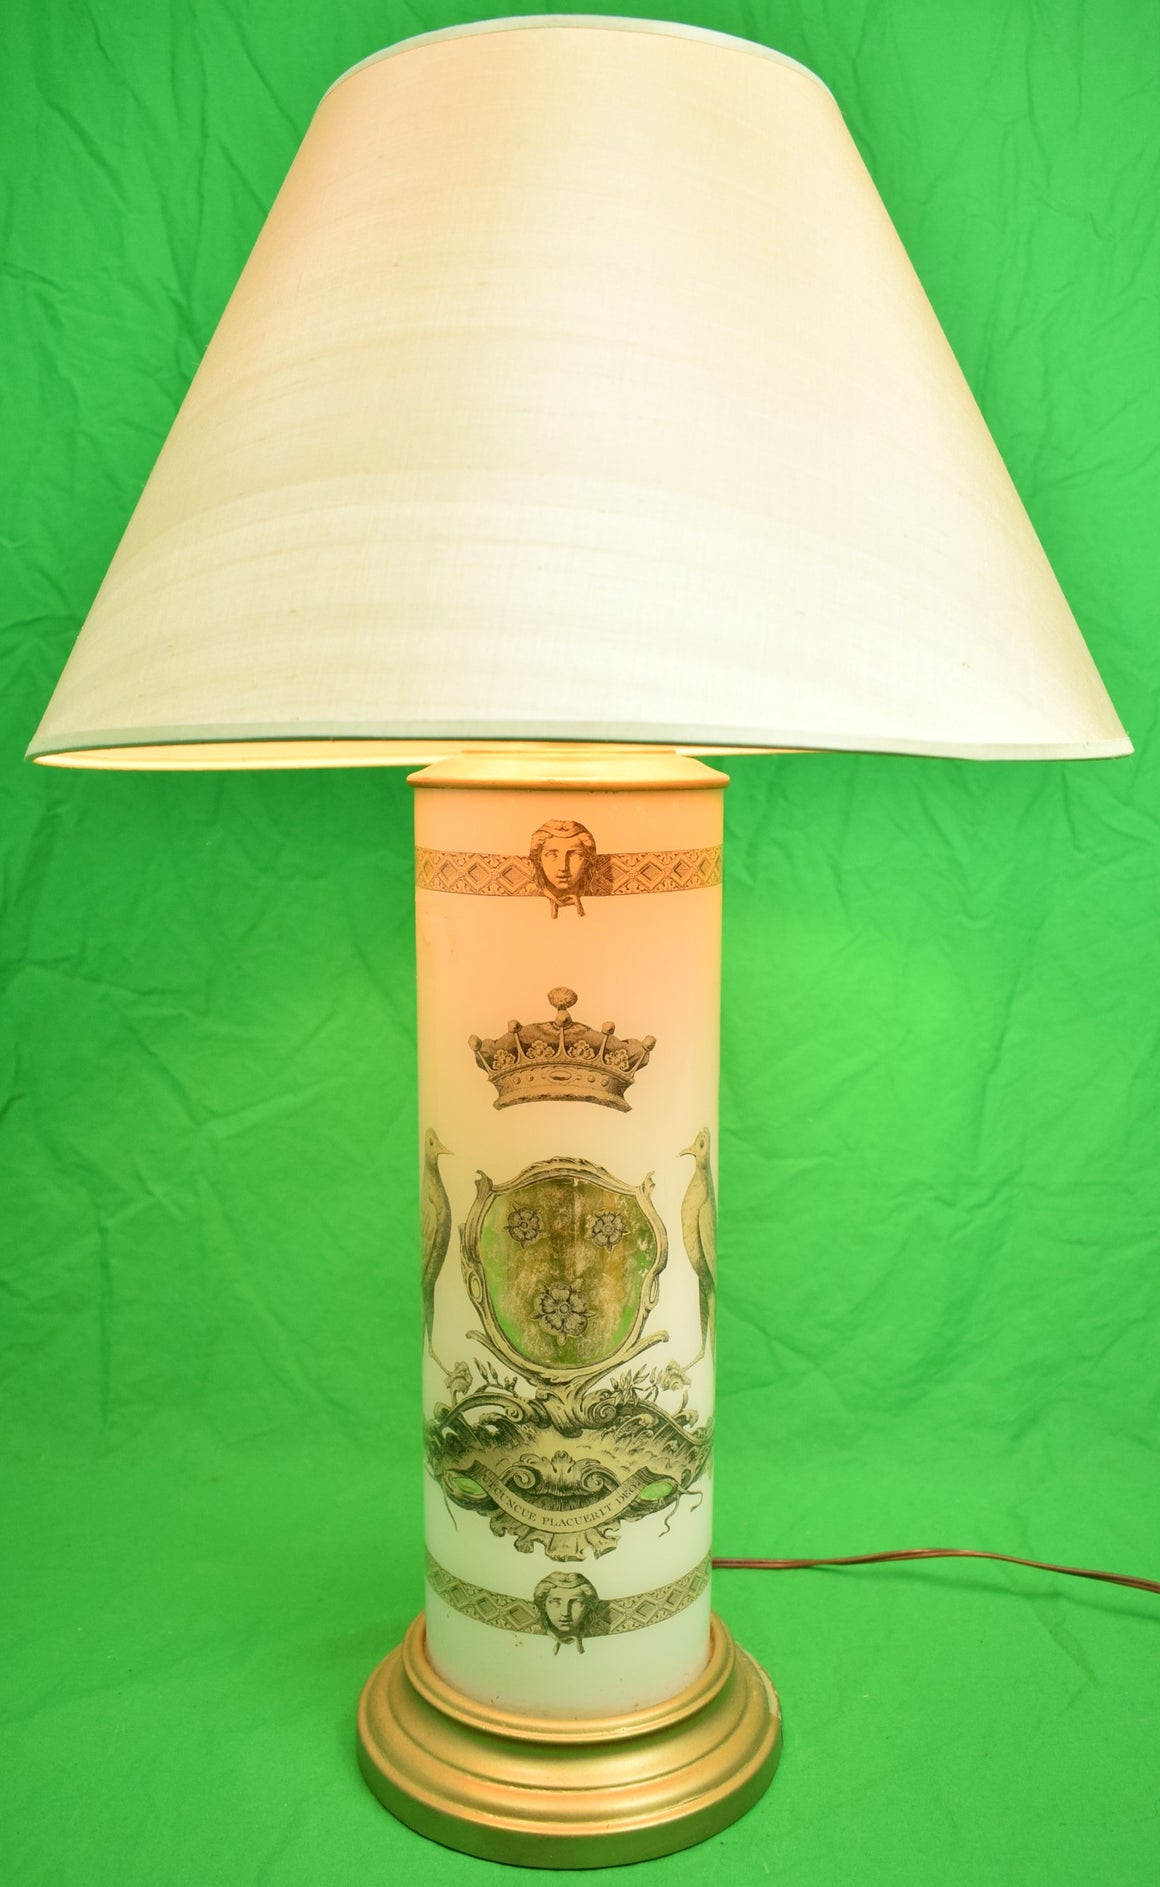 Decoupage Heraldic Table Lamp